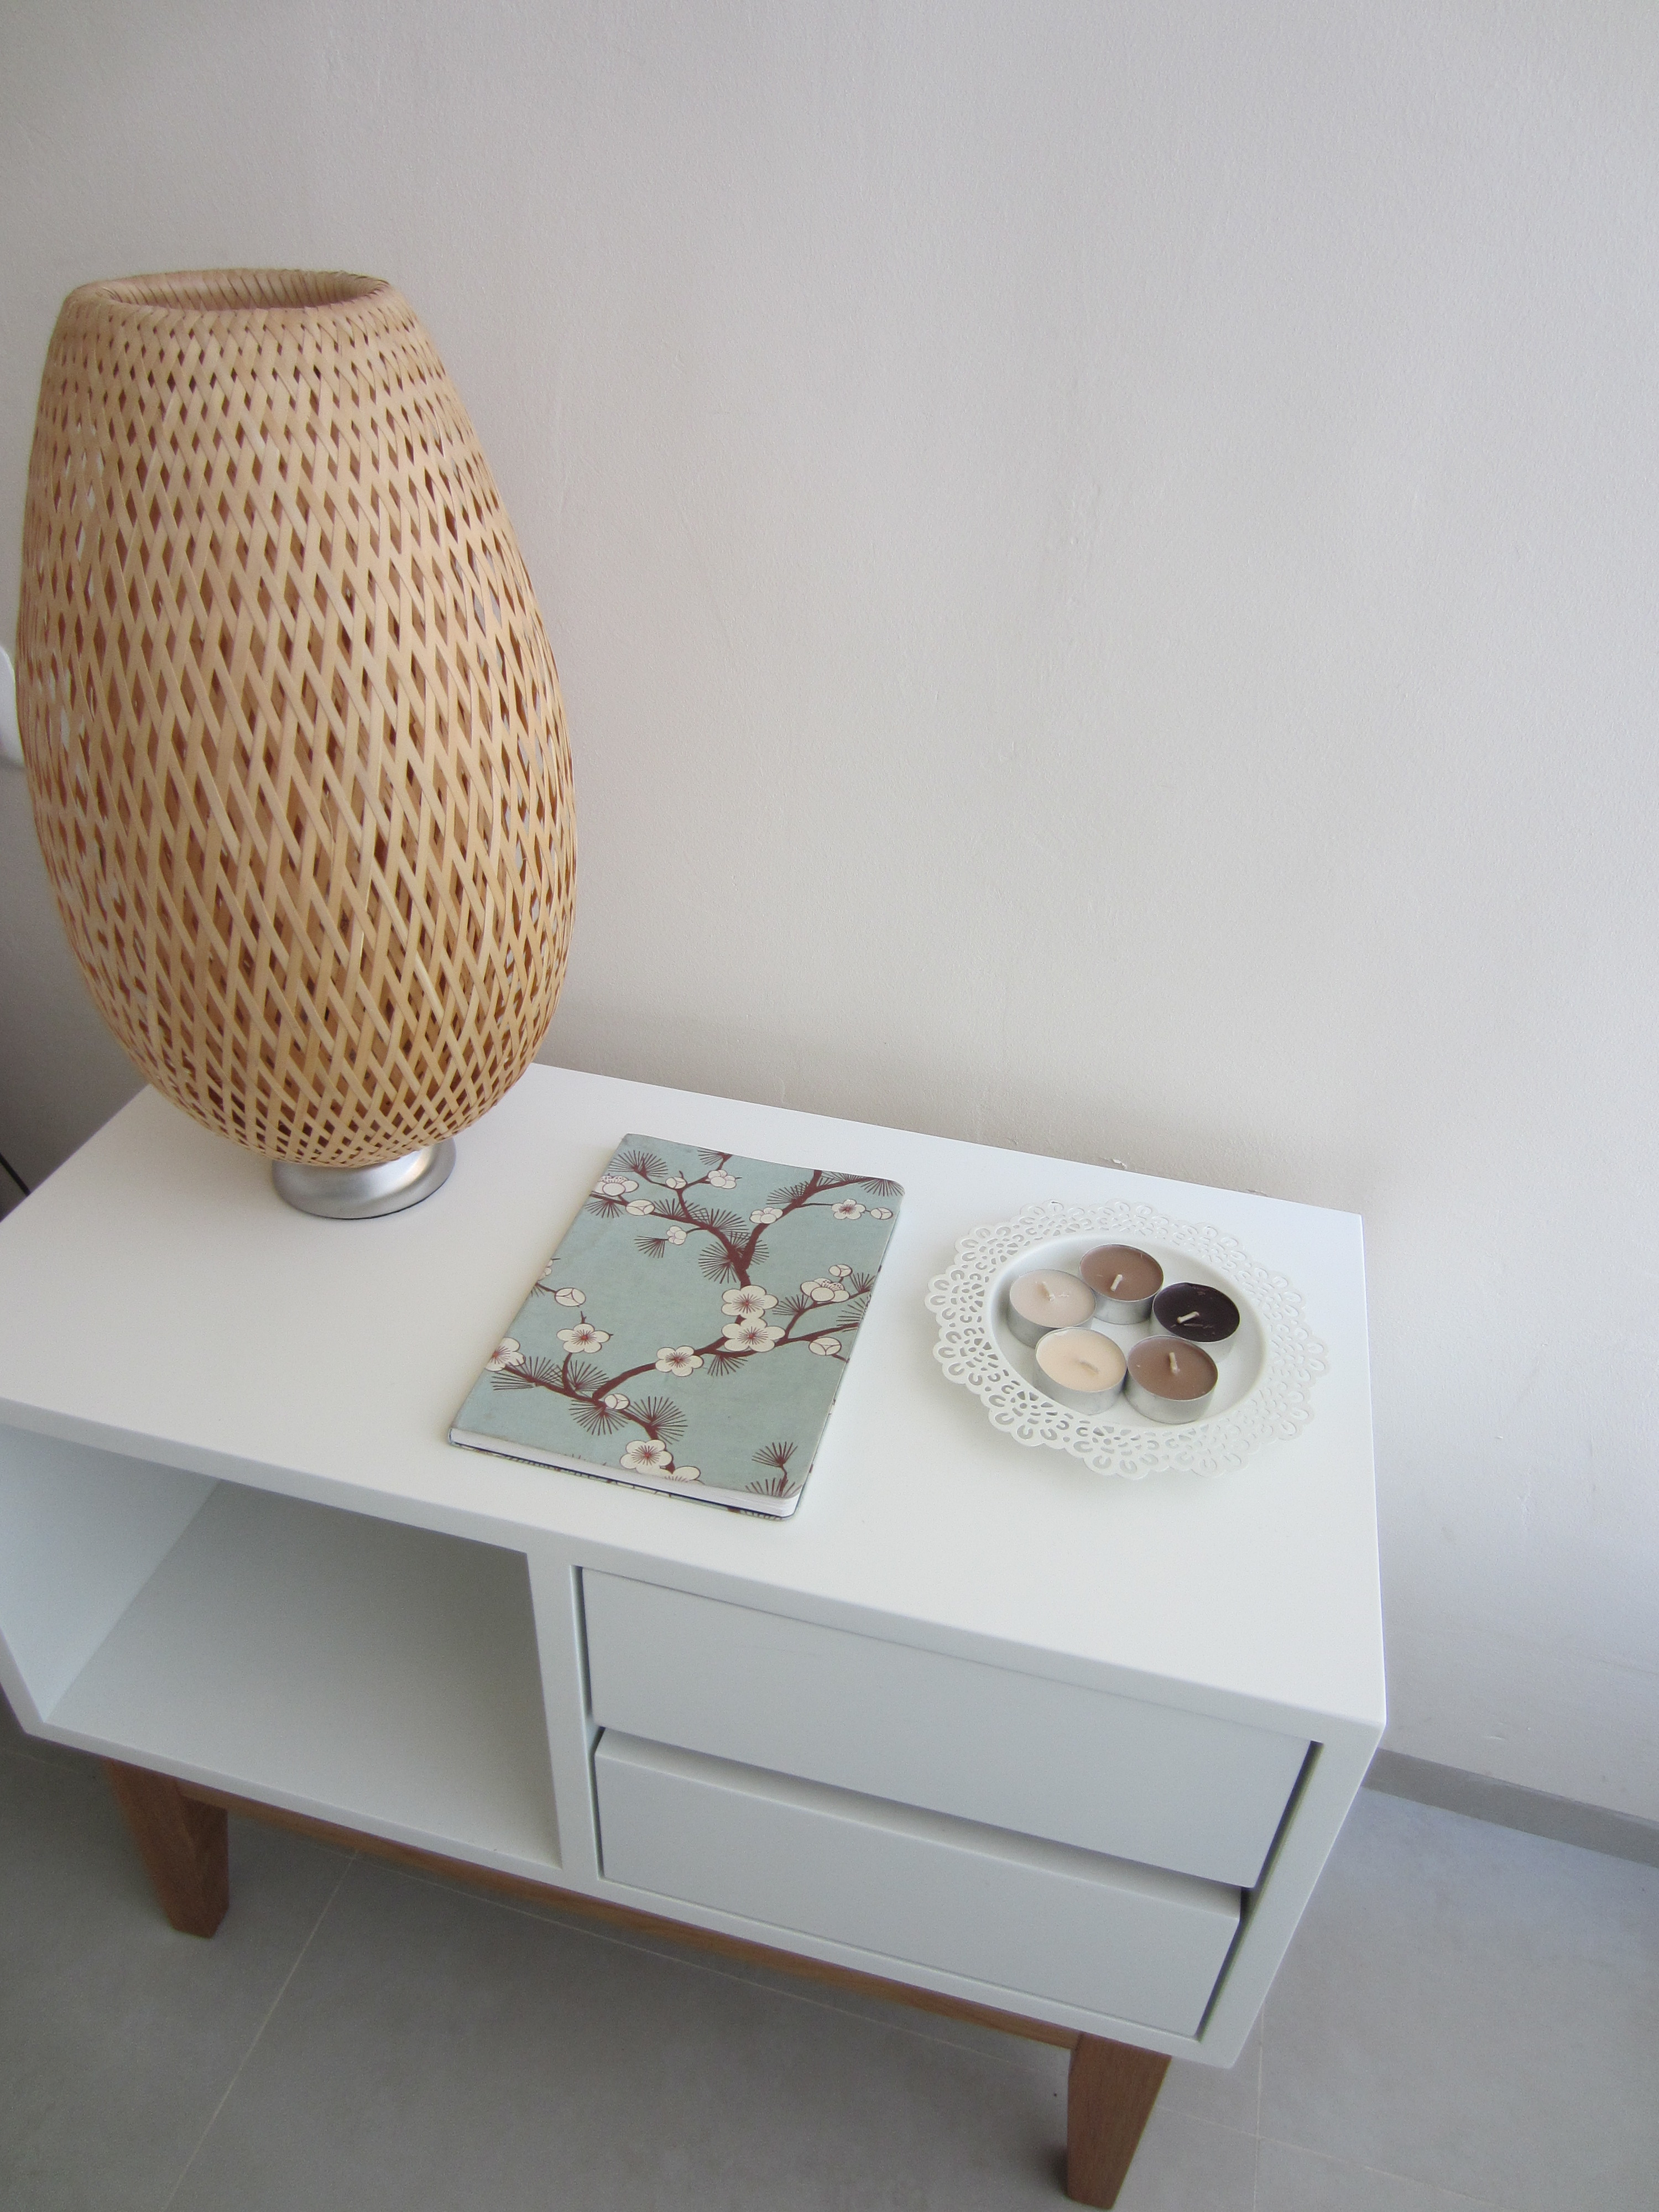 Stylish bedside table